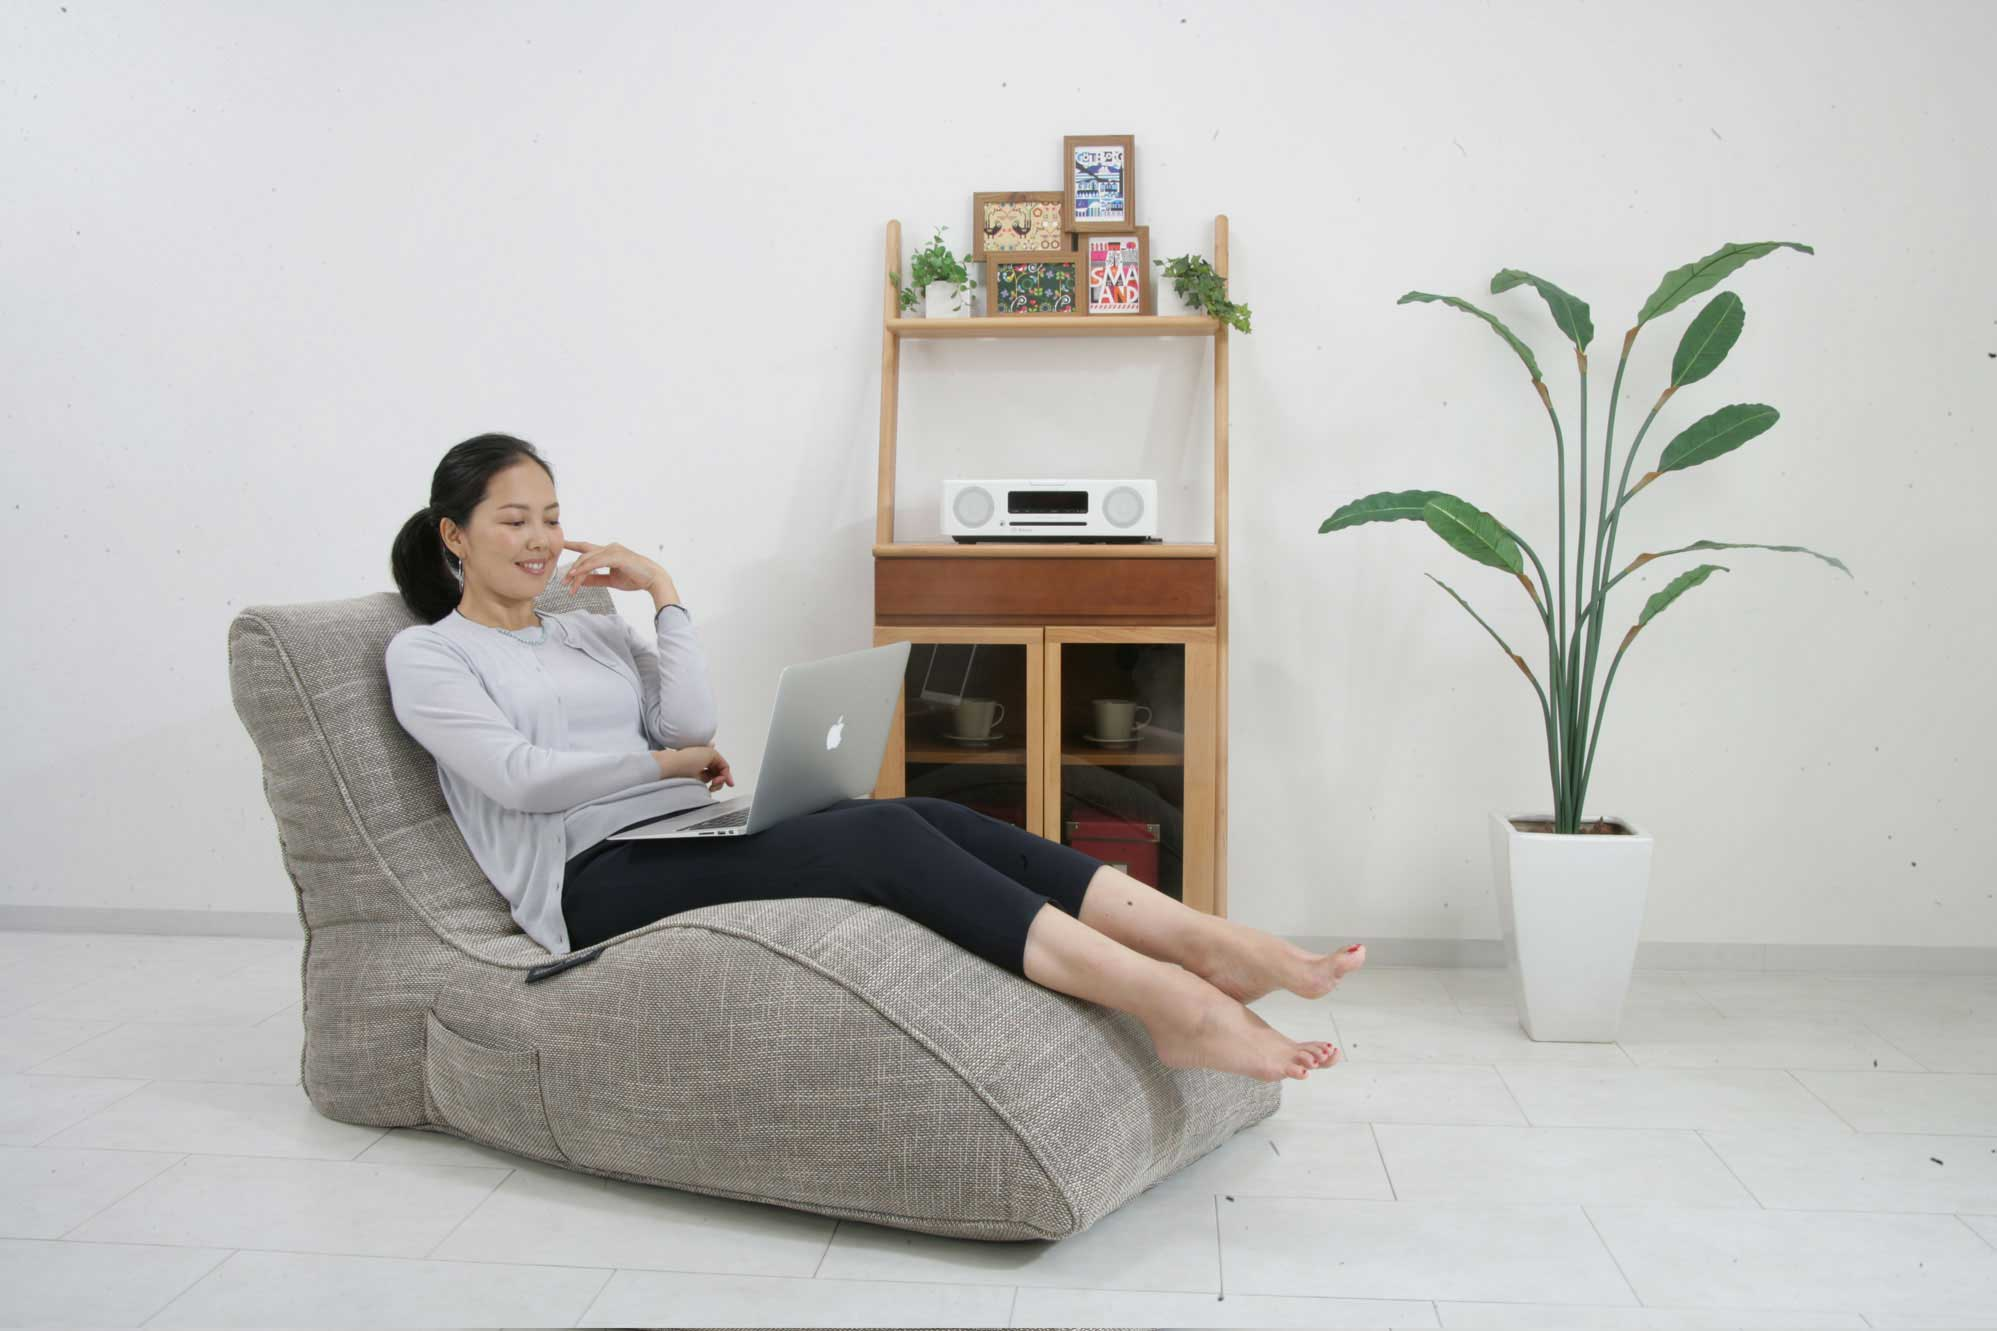 Avatar Lounger Eco Weave5